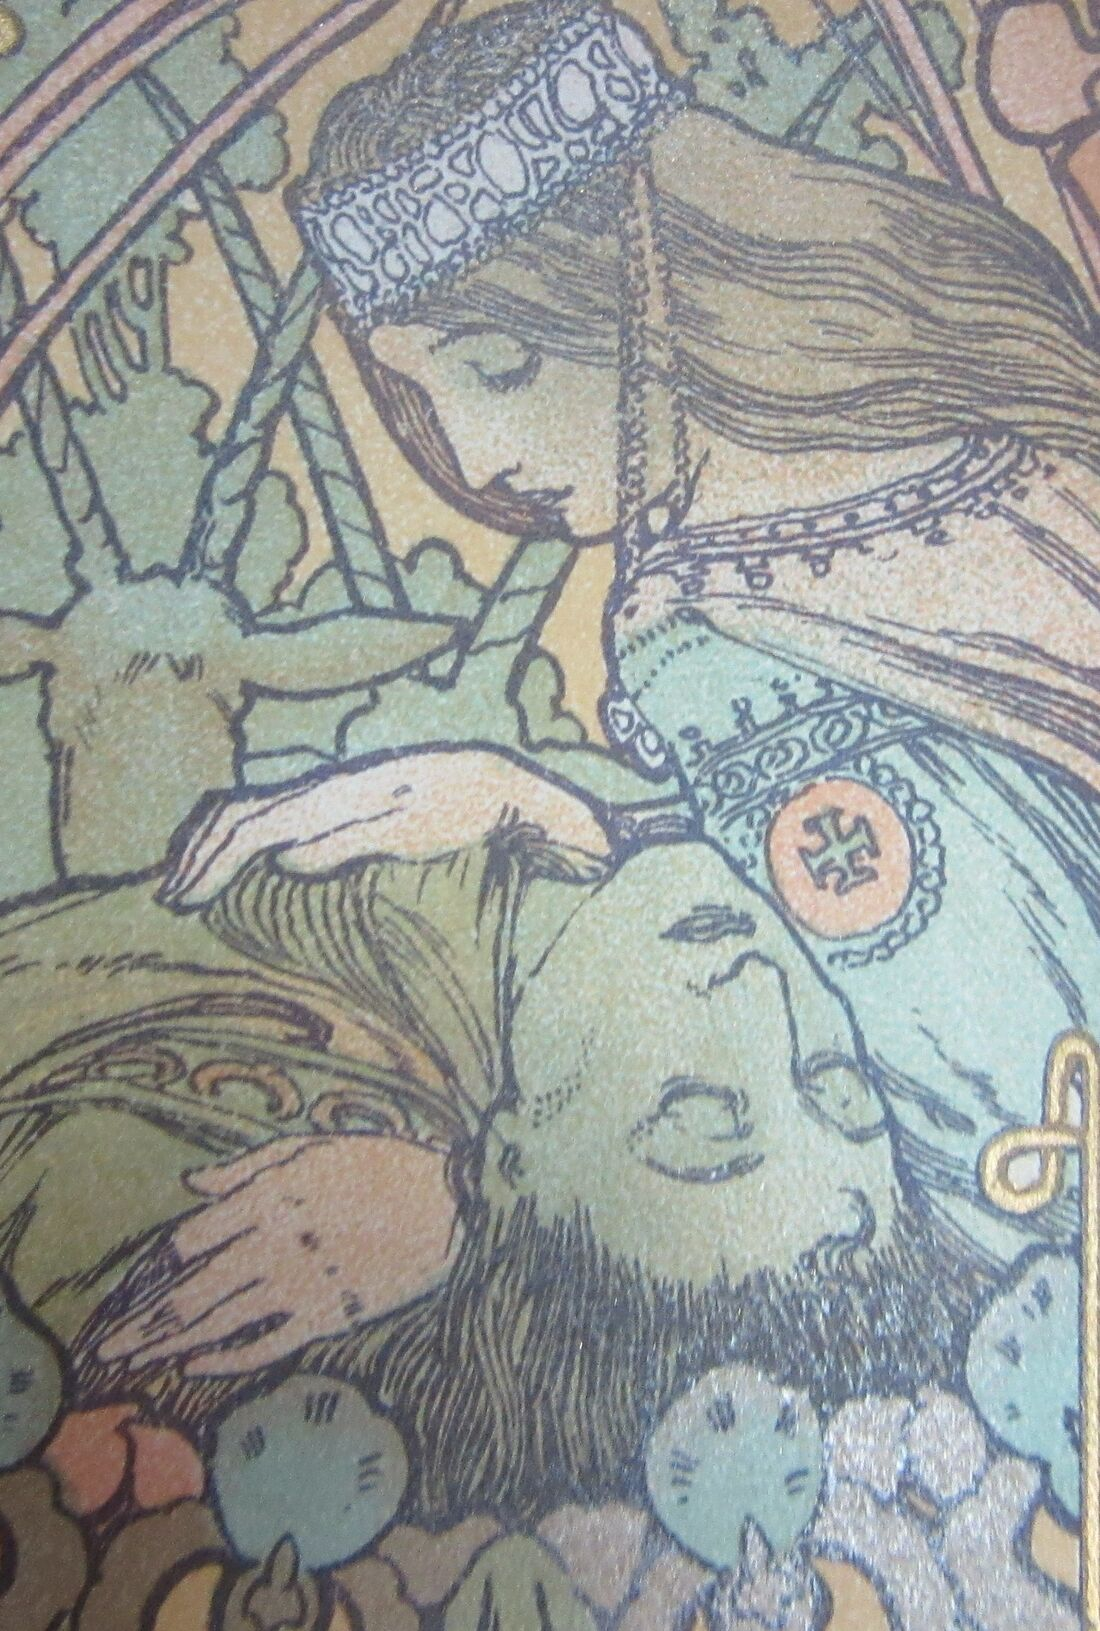 Jaufre dies in Ilsee's arms.